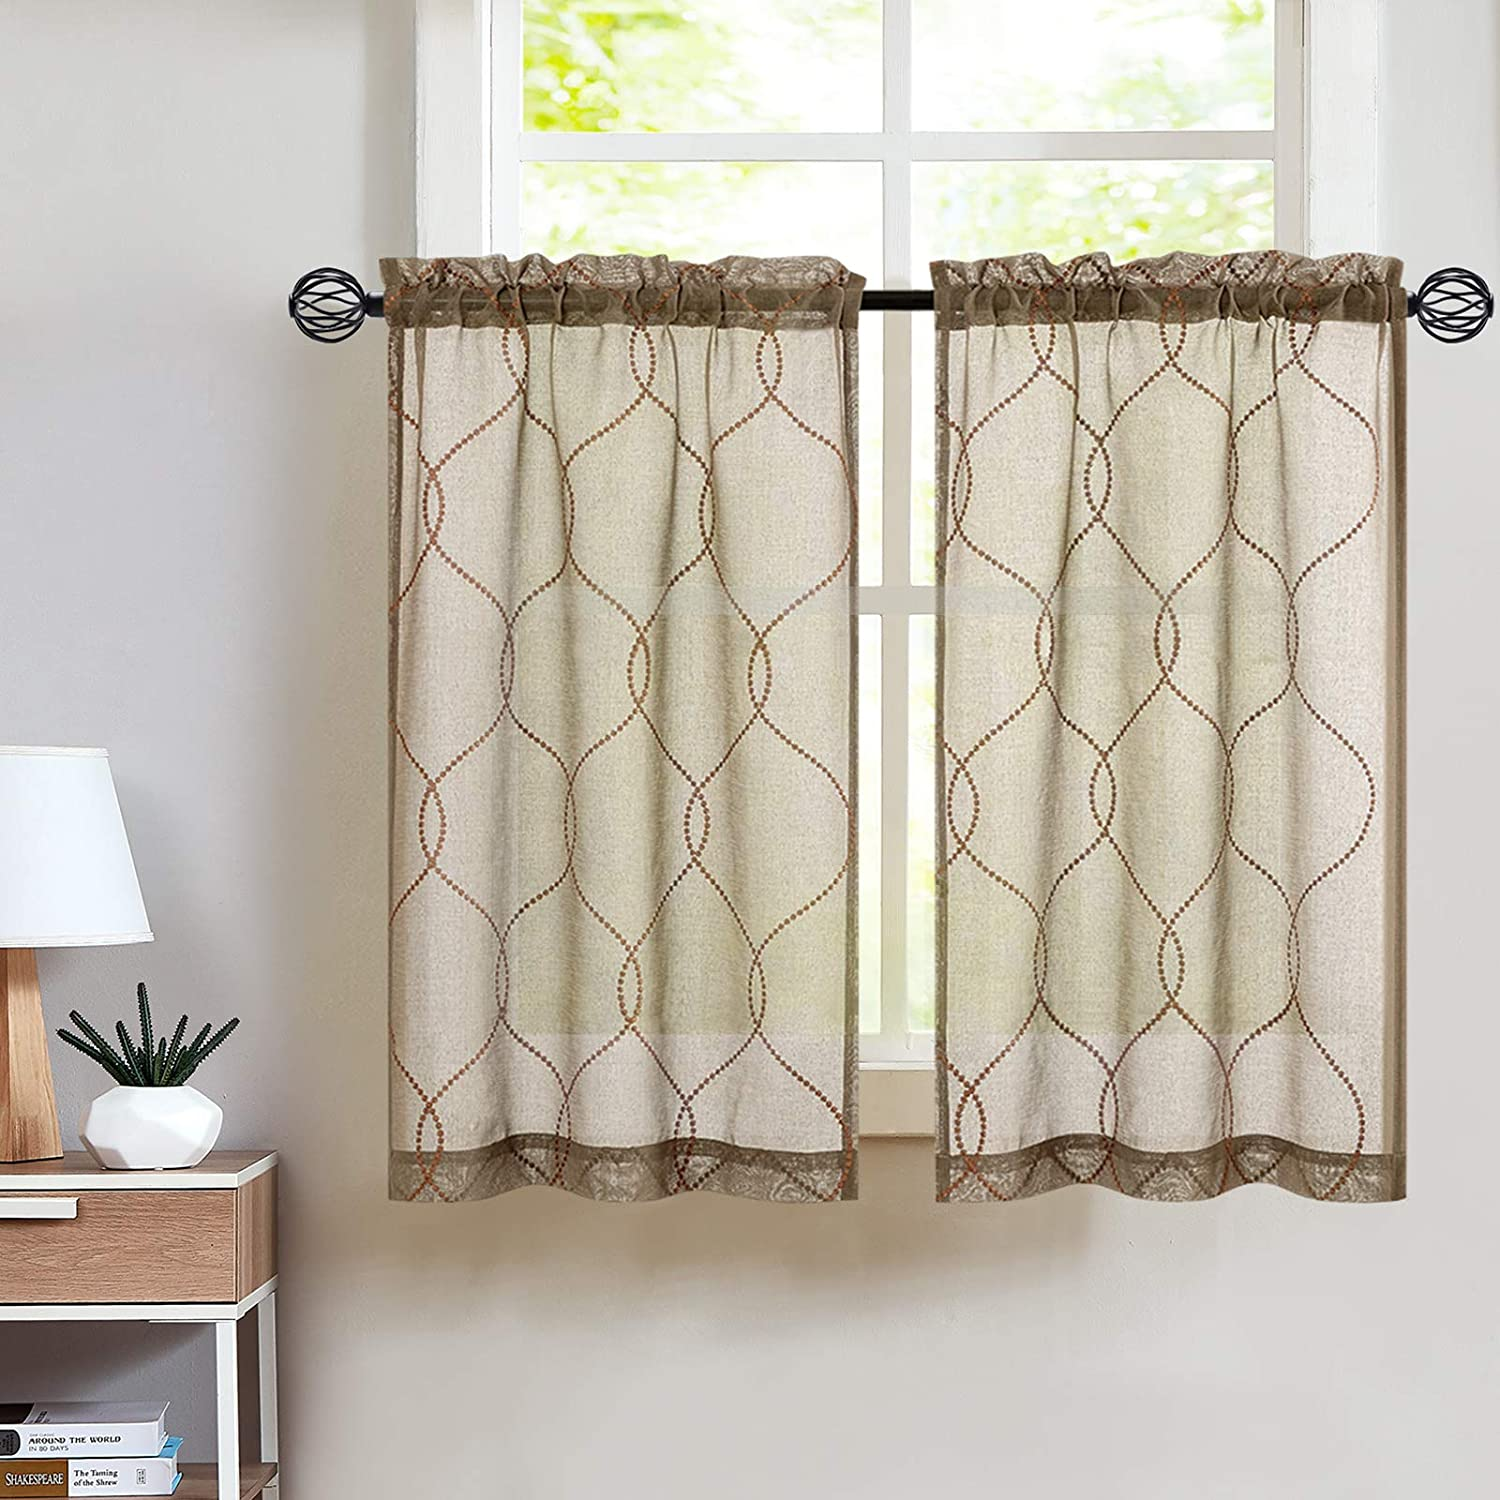 Amazon Com Embroidery Kitchen Curtain Sets 3 Pcs Moroccan Trellis Pattern Embroidered Semi Sheer Kitchen Tier Curtains And Valance Set 36 Inch For Bathroom Taupe Home Kitchen